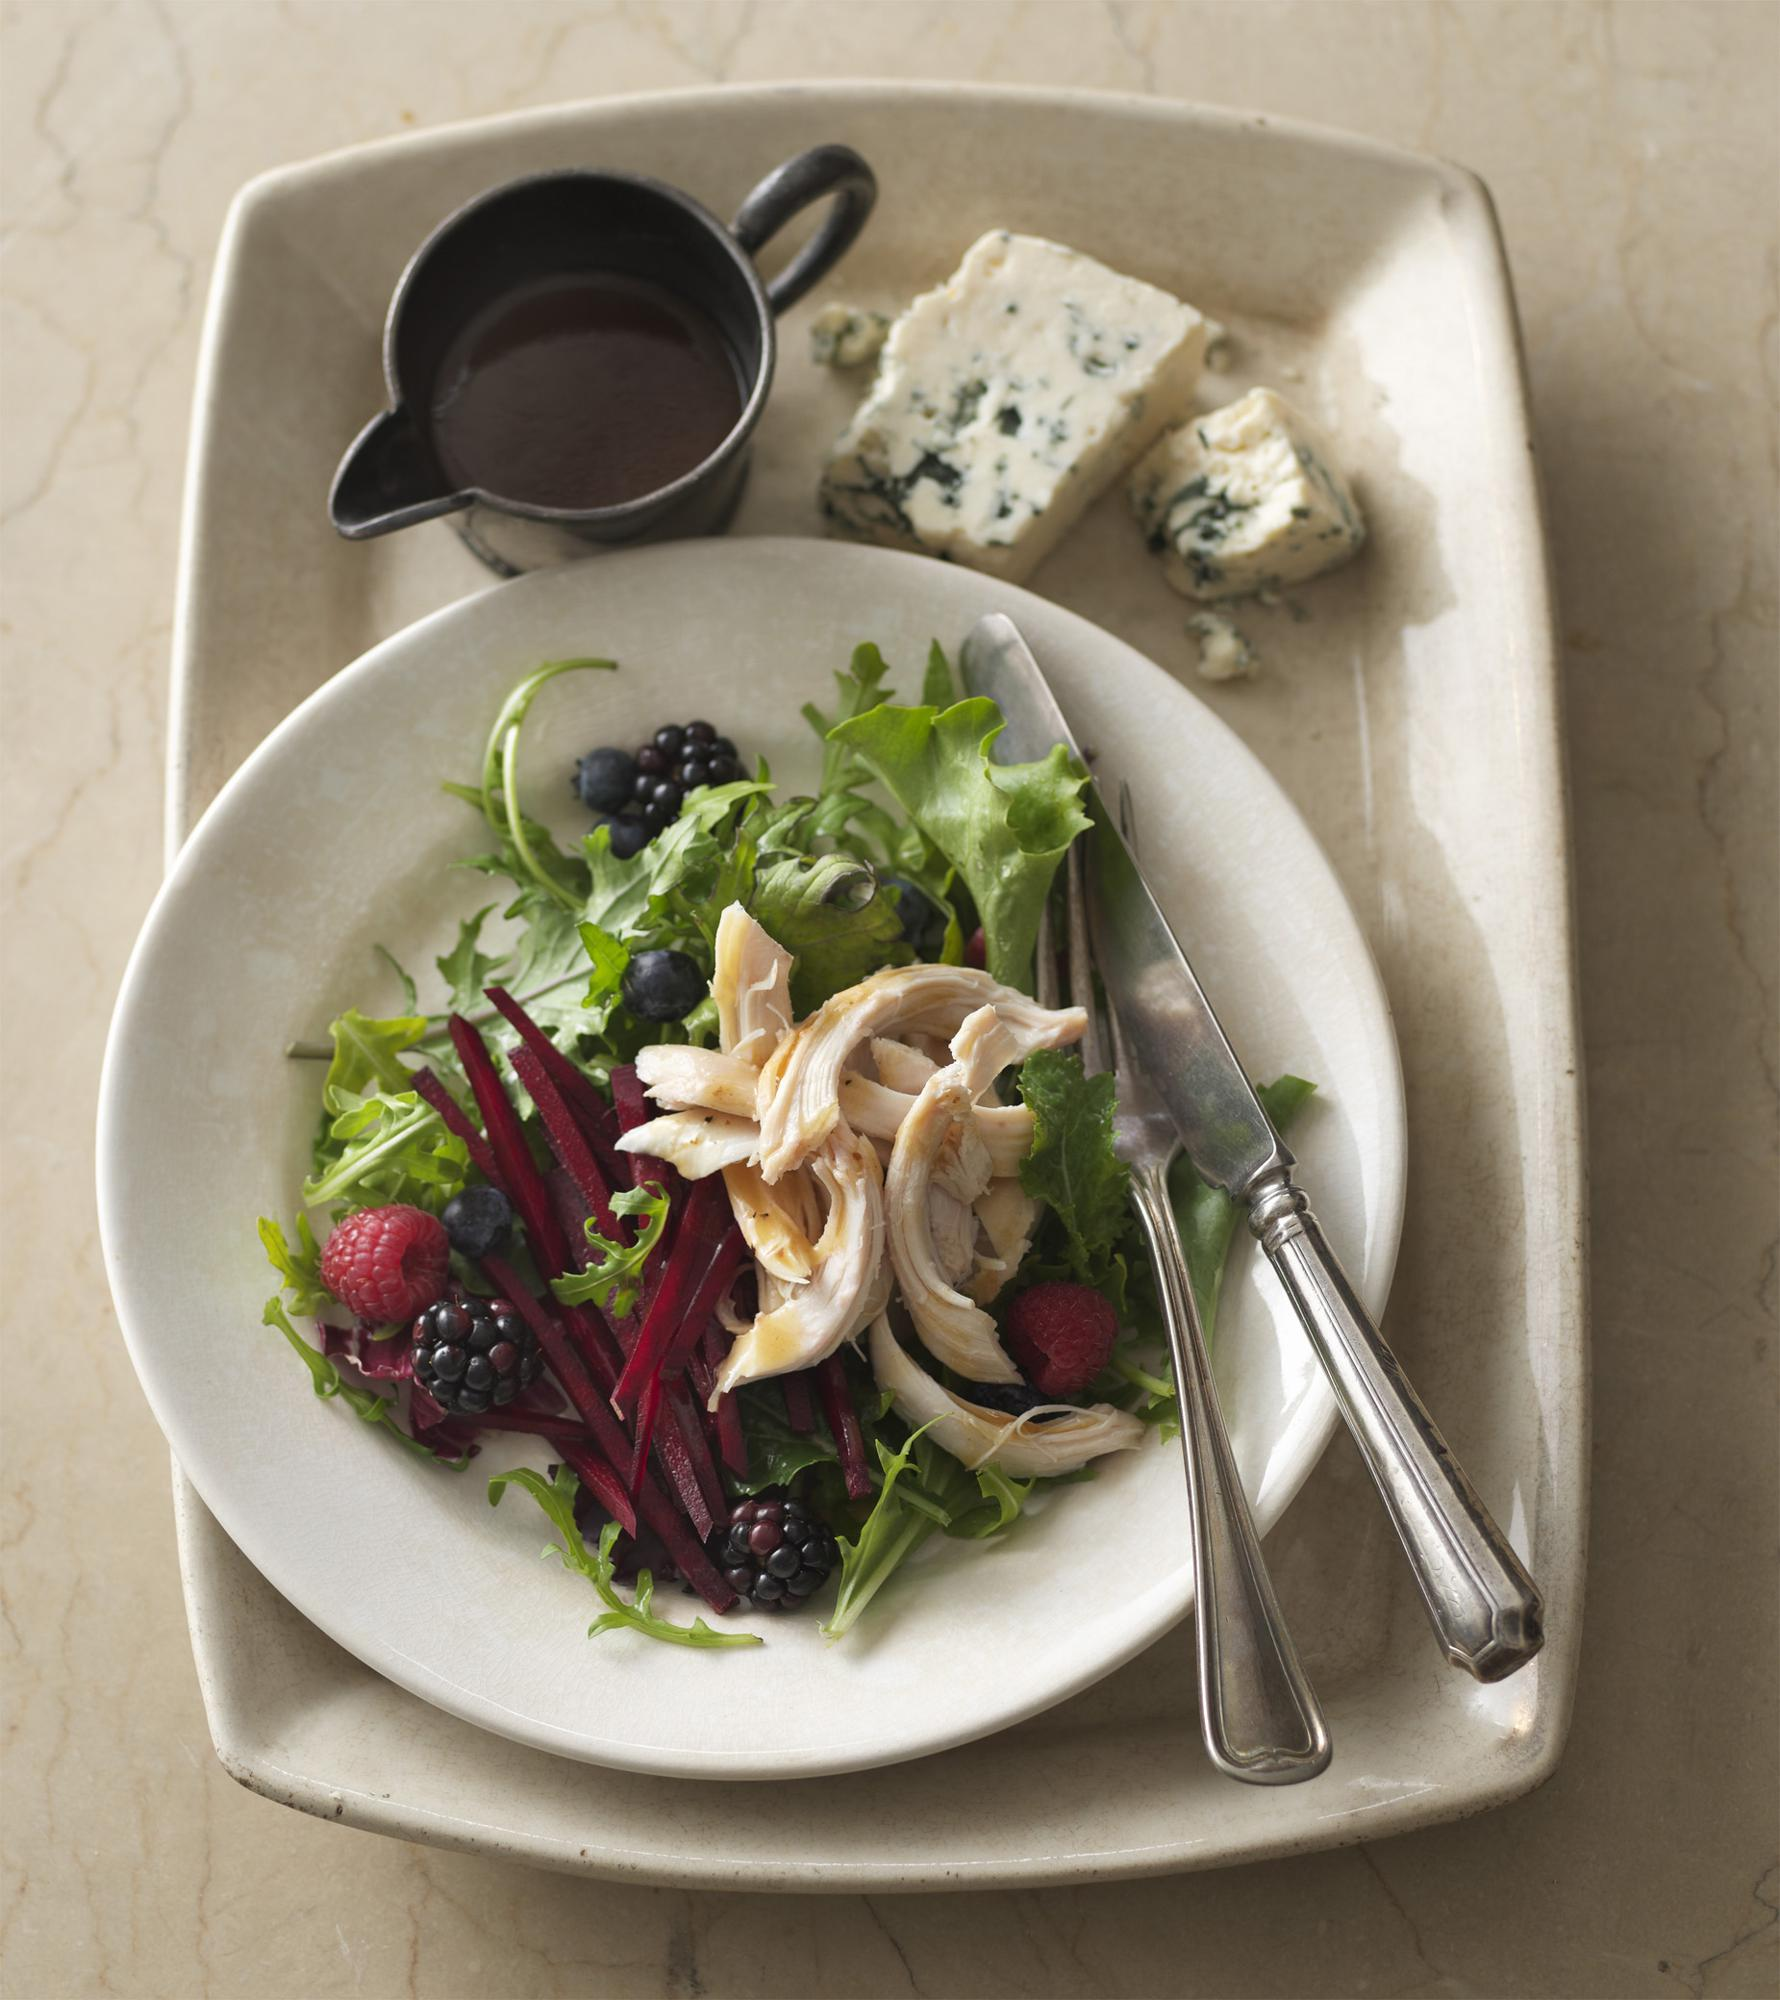 Leafy Chicken Salad with Berries & Beets